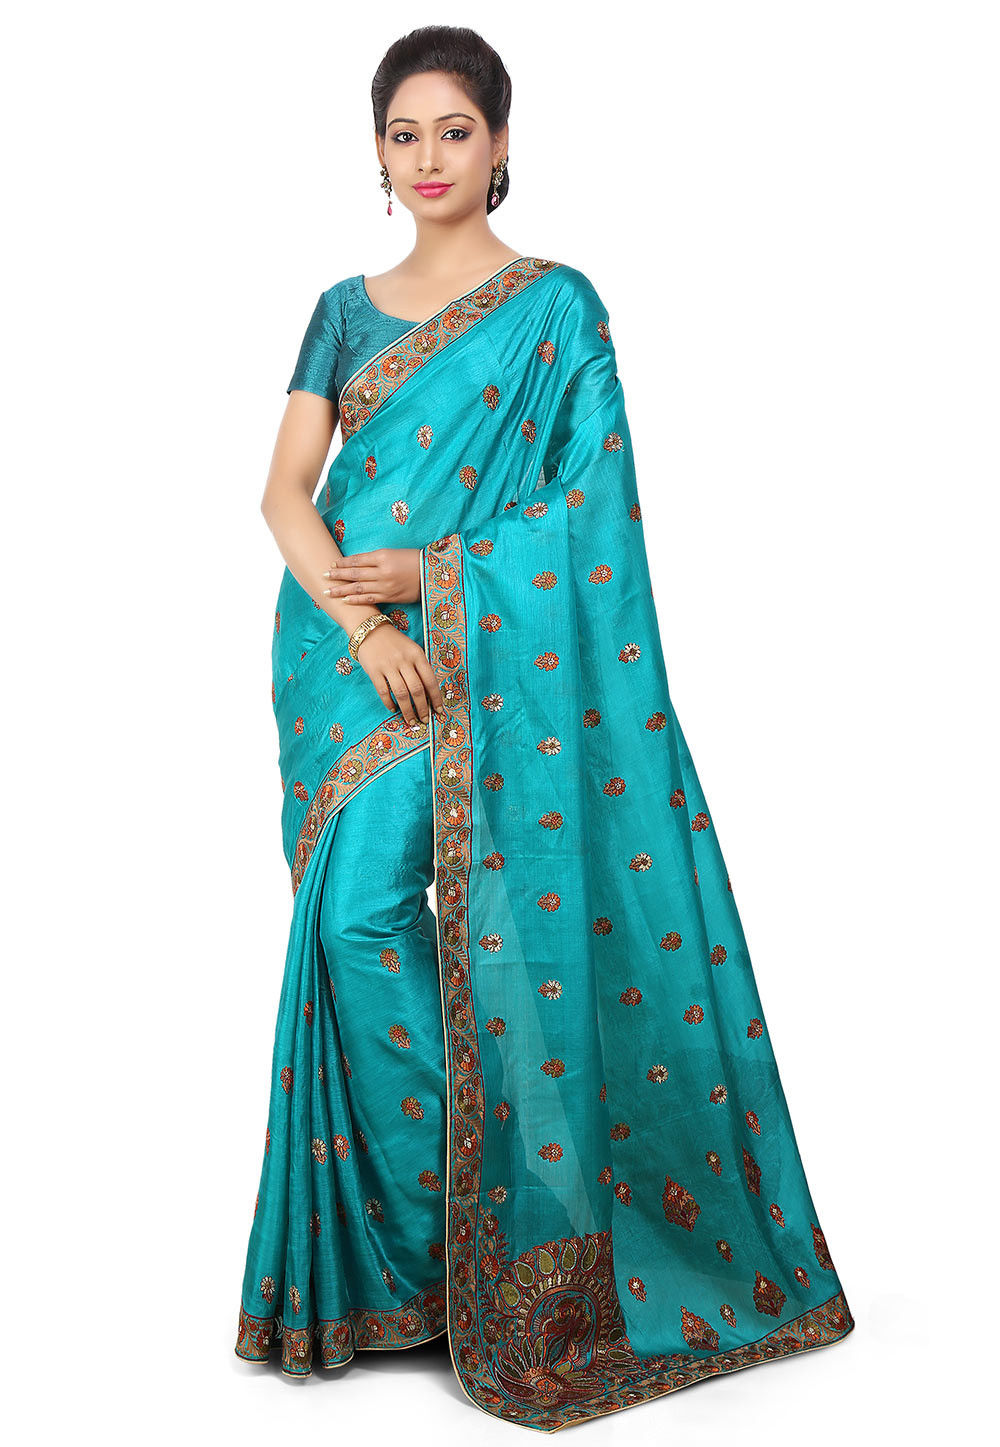 Embroidered Pure Tussar Silk Saree in Teal Blue